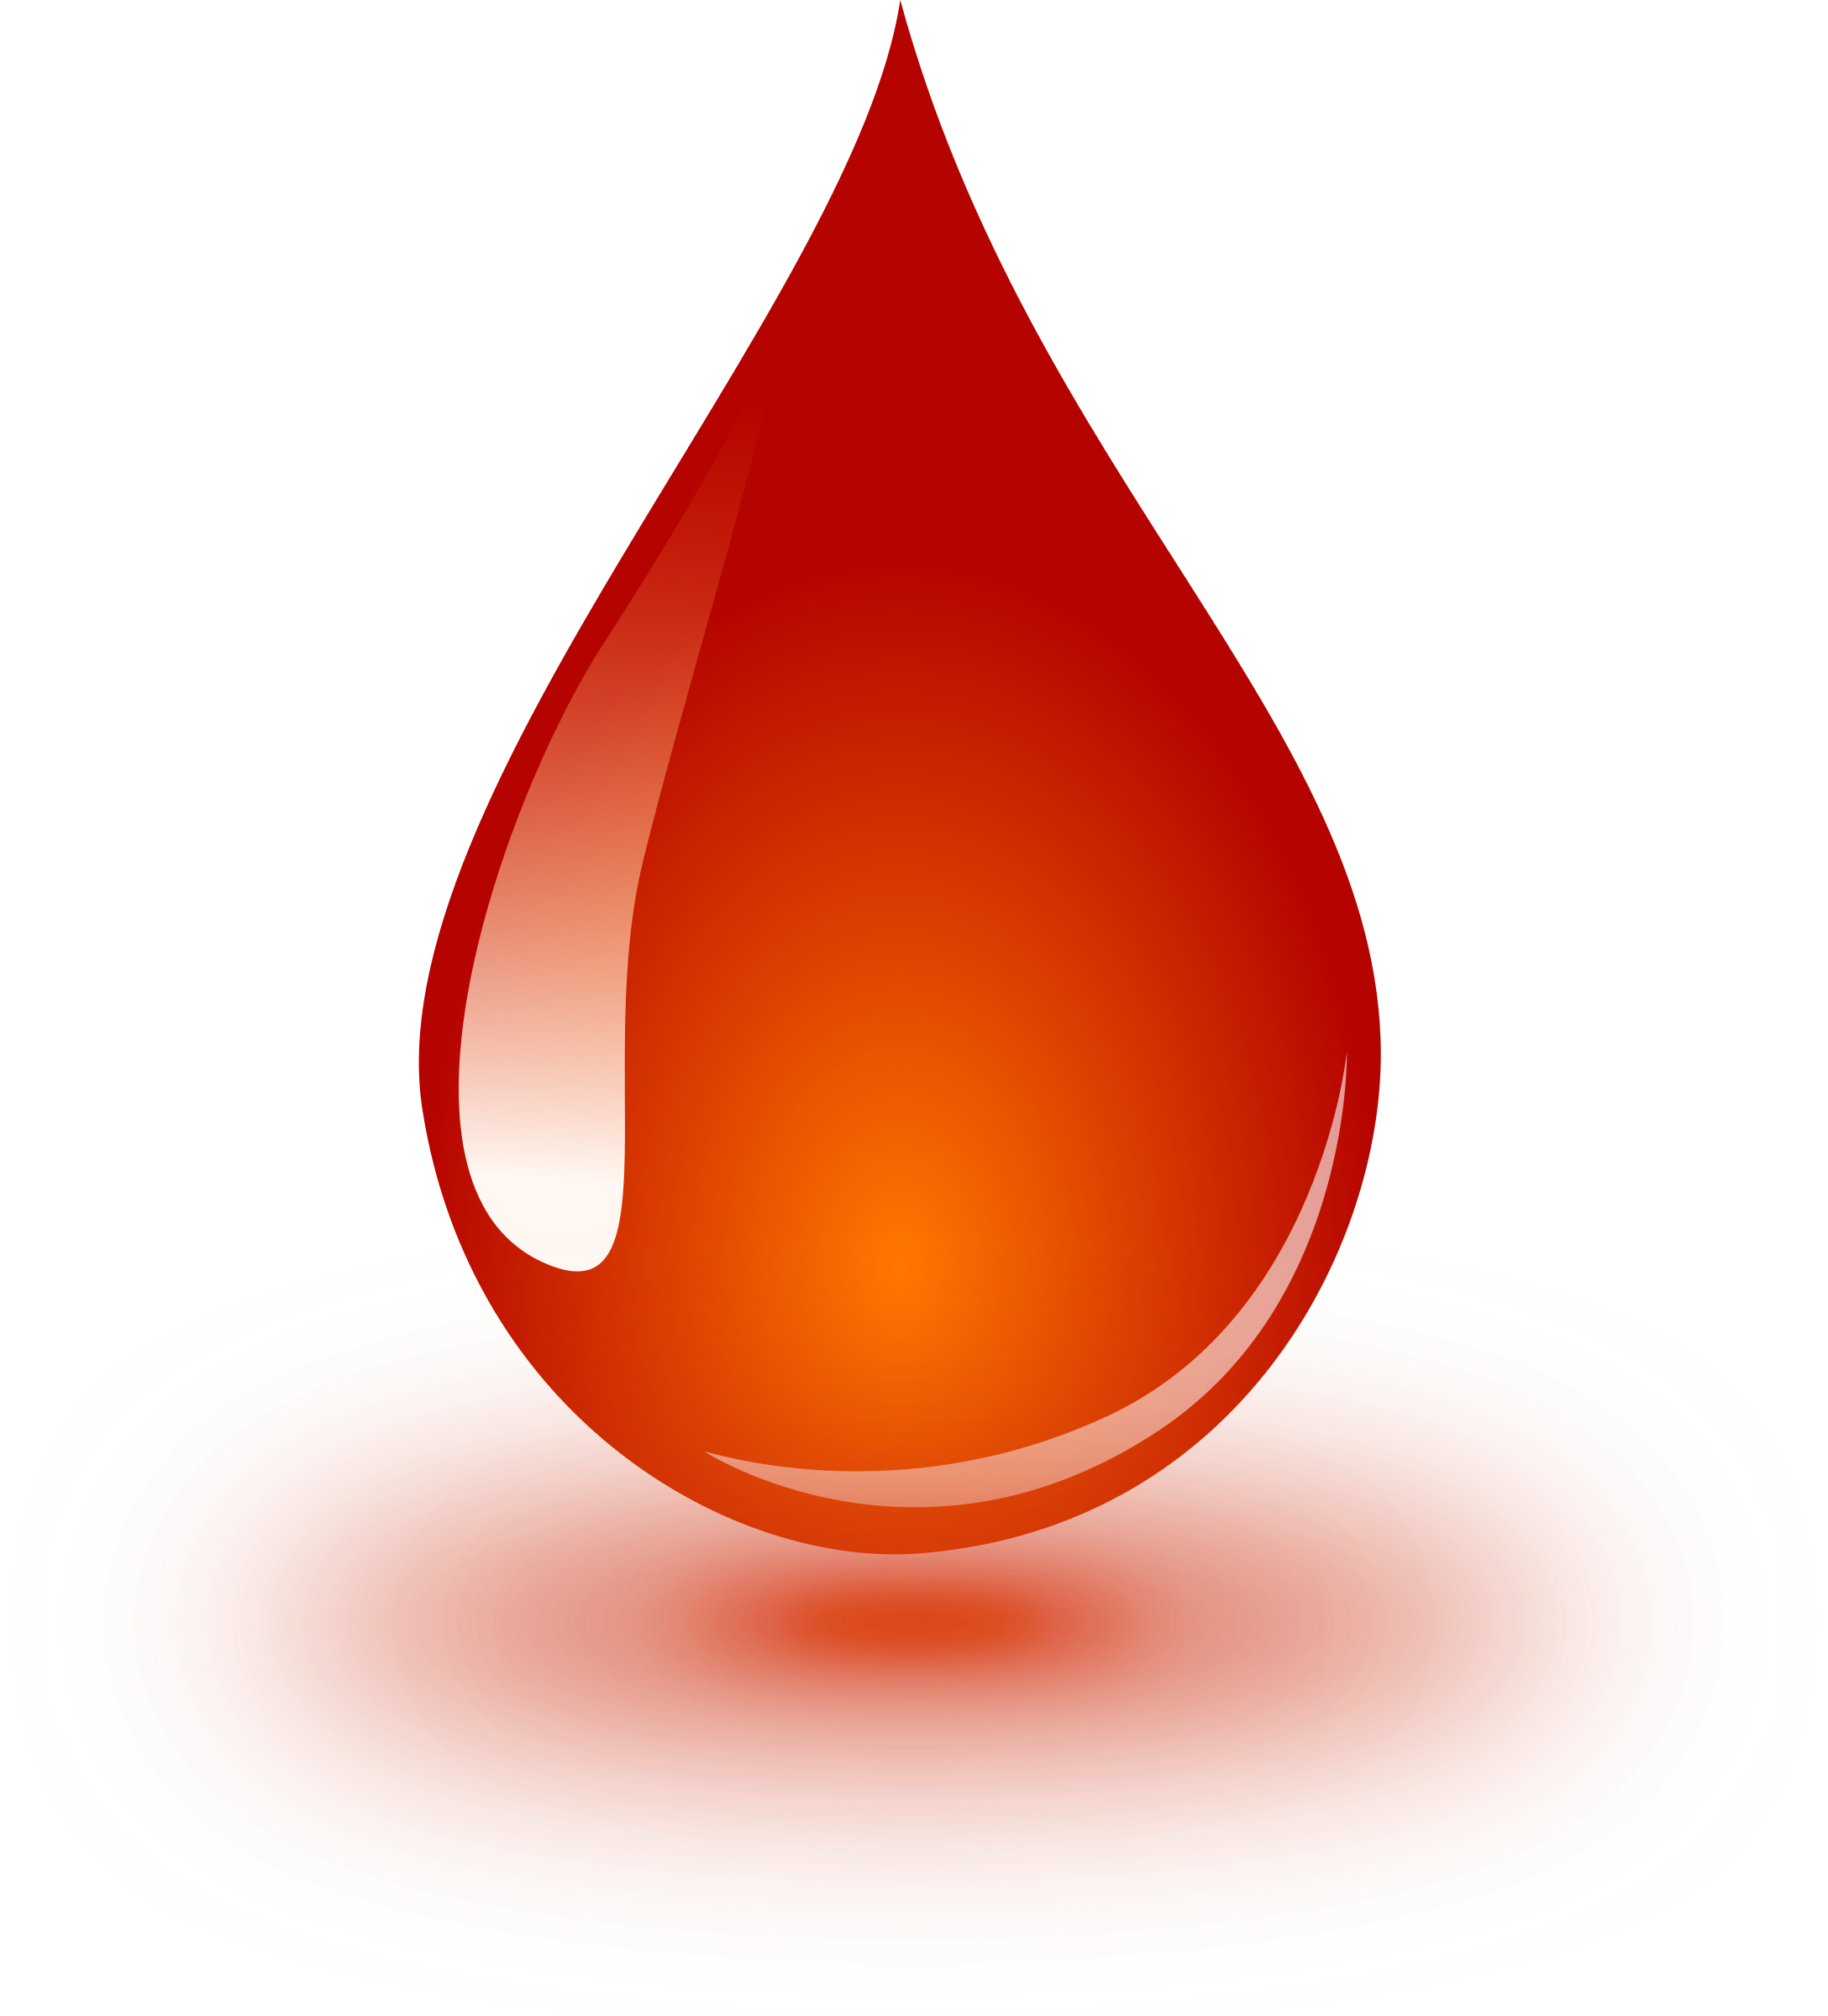 clipart blood drop